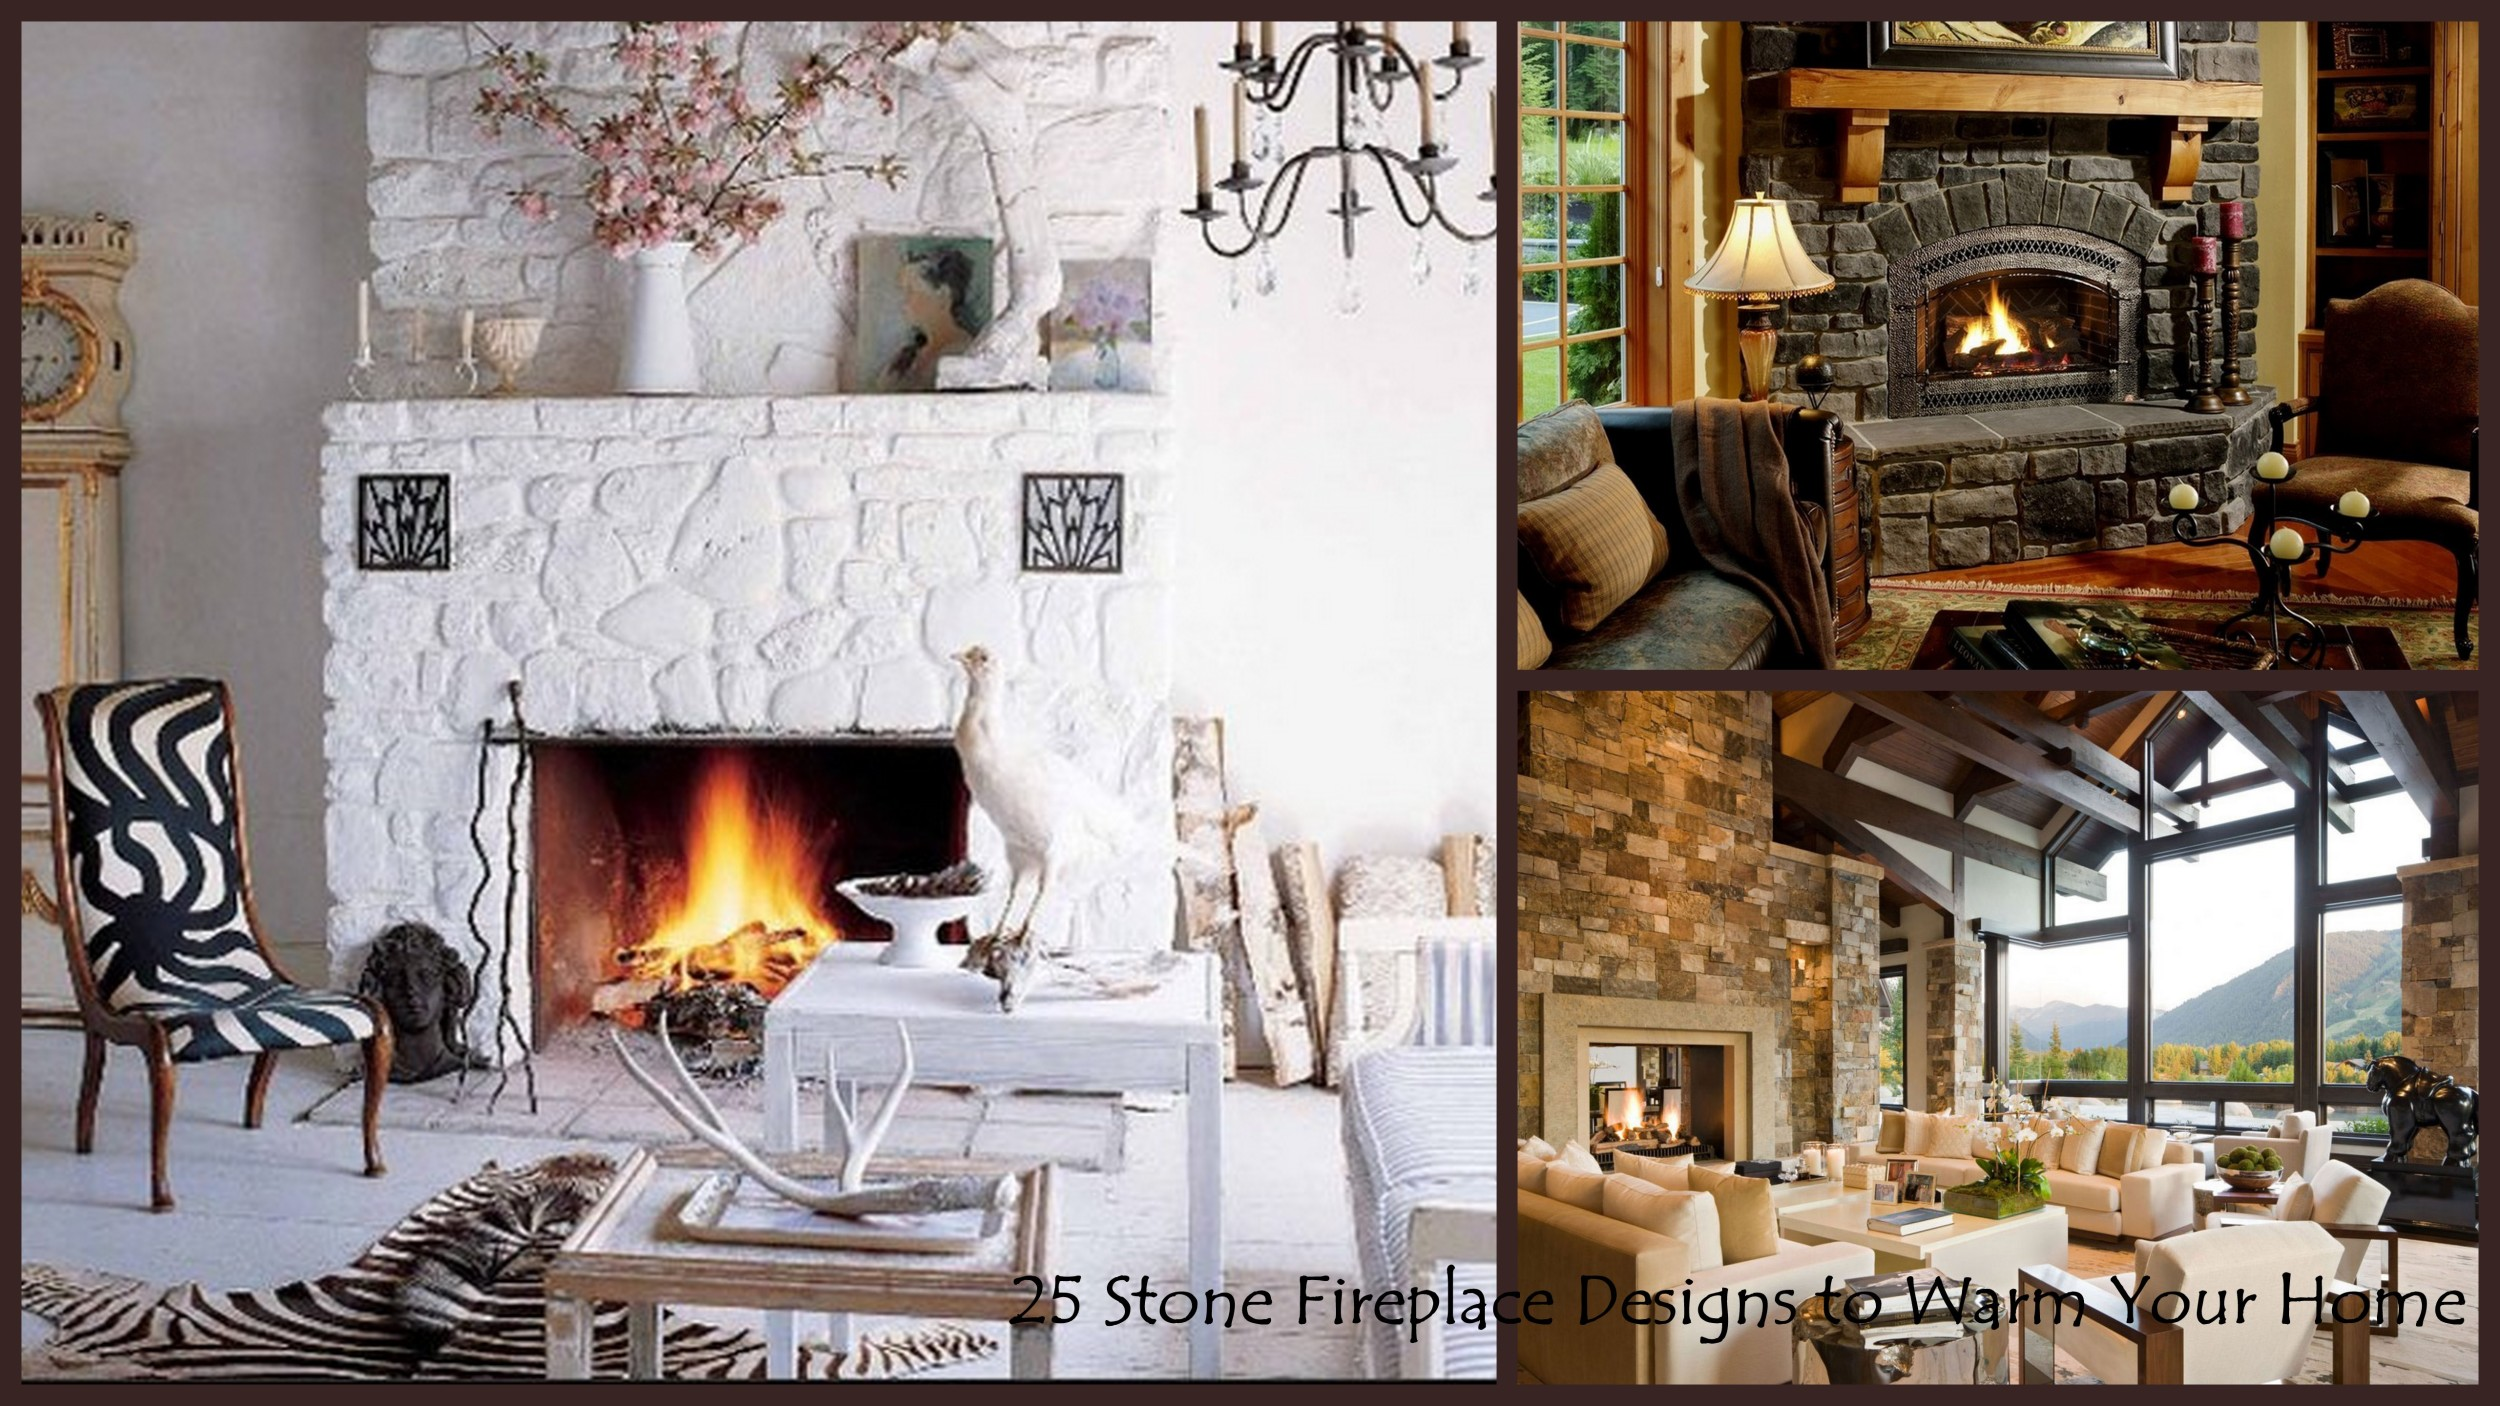 ... Enchantment Has Mesmerized Us From The Very Beginning And Now We Have  The Luxury Of Admiring Its Beauty In Elegant Stone Fireplace Designs With  Little ...